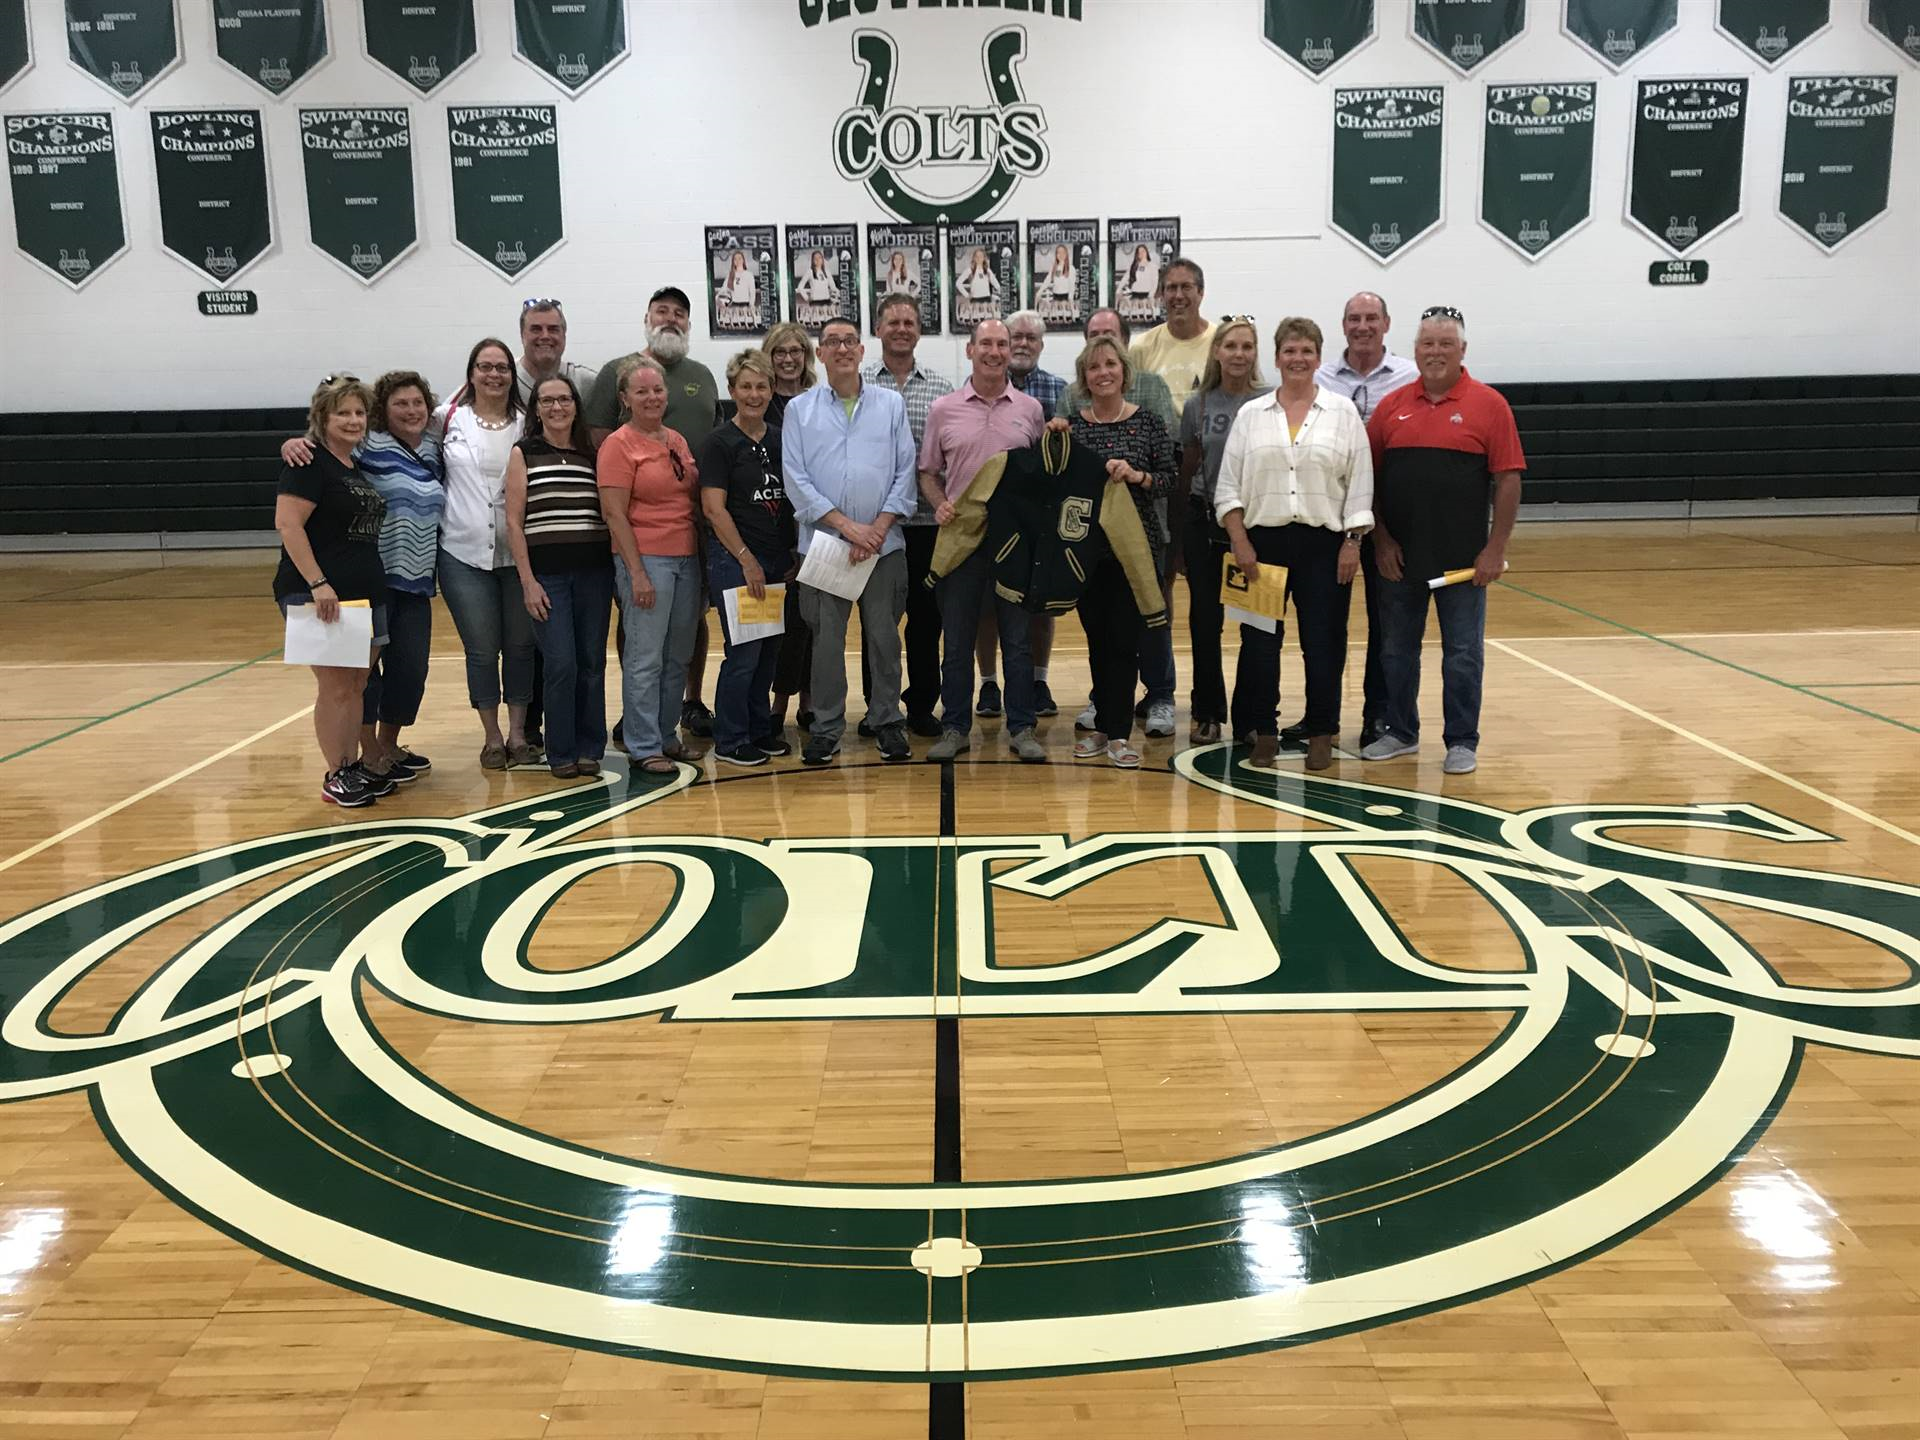 Members of the Cloverleaf Class of 1979